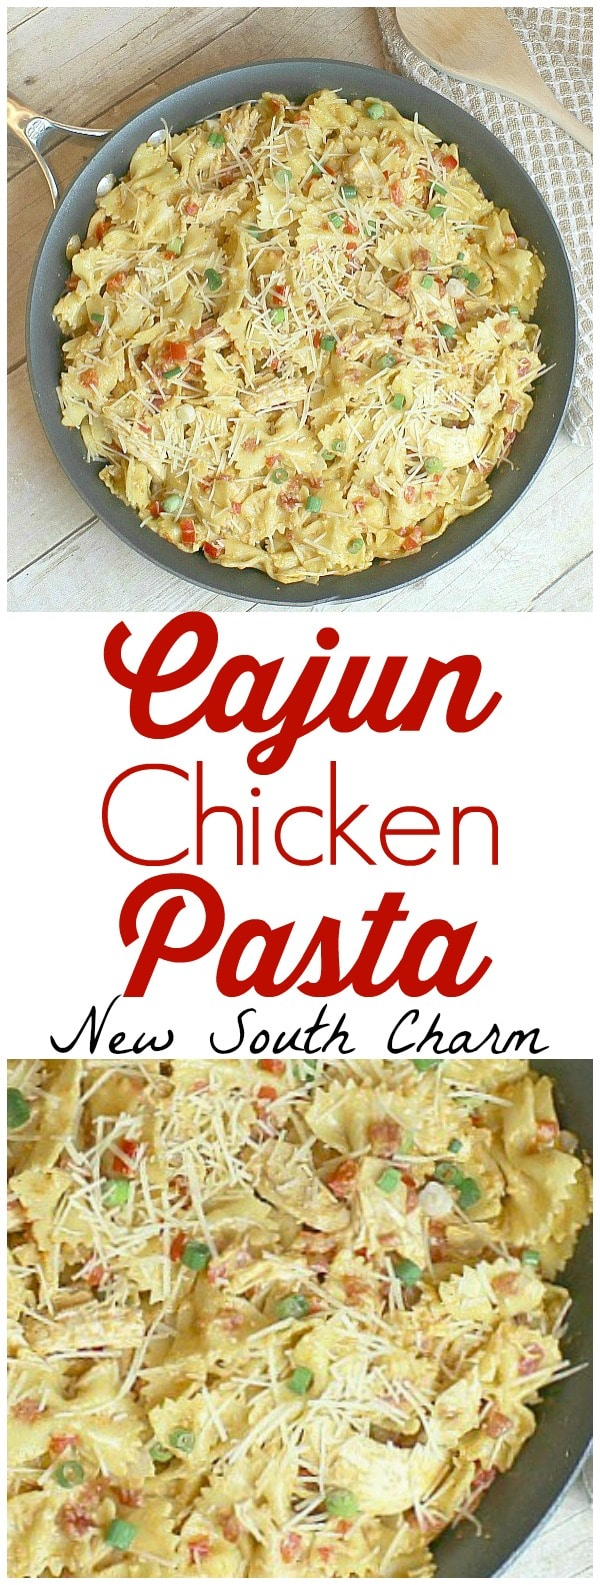 Cajun Chicken Pasta is an easy fast dinner that everyone will love.